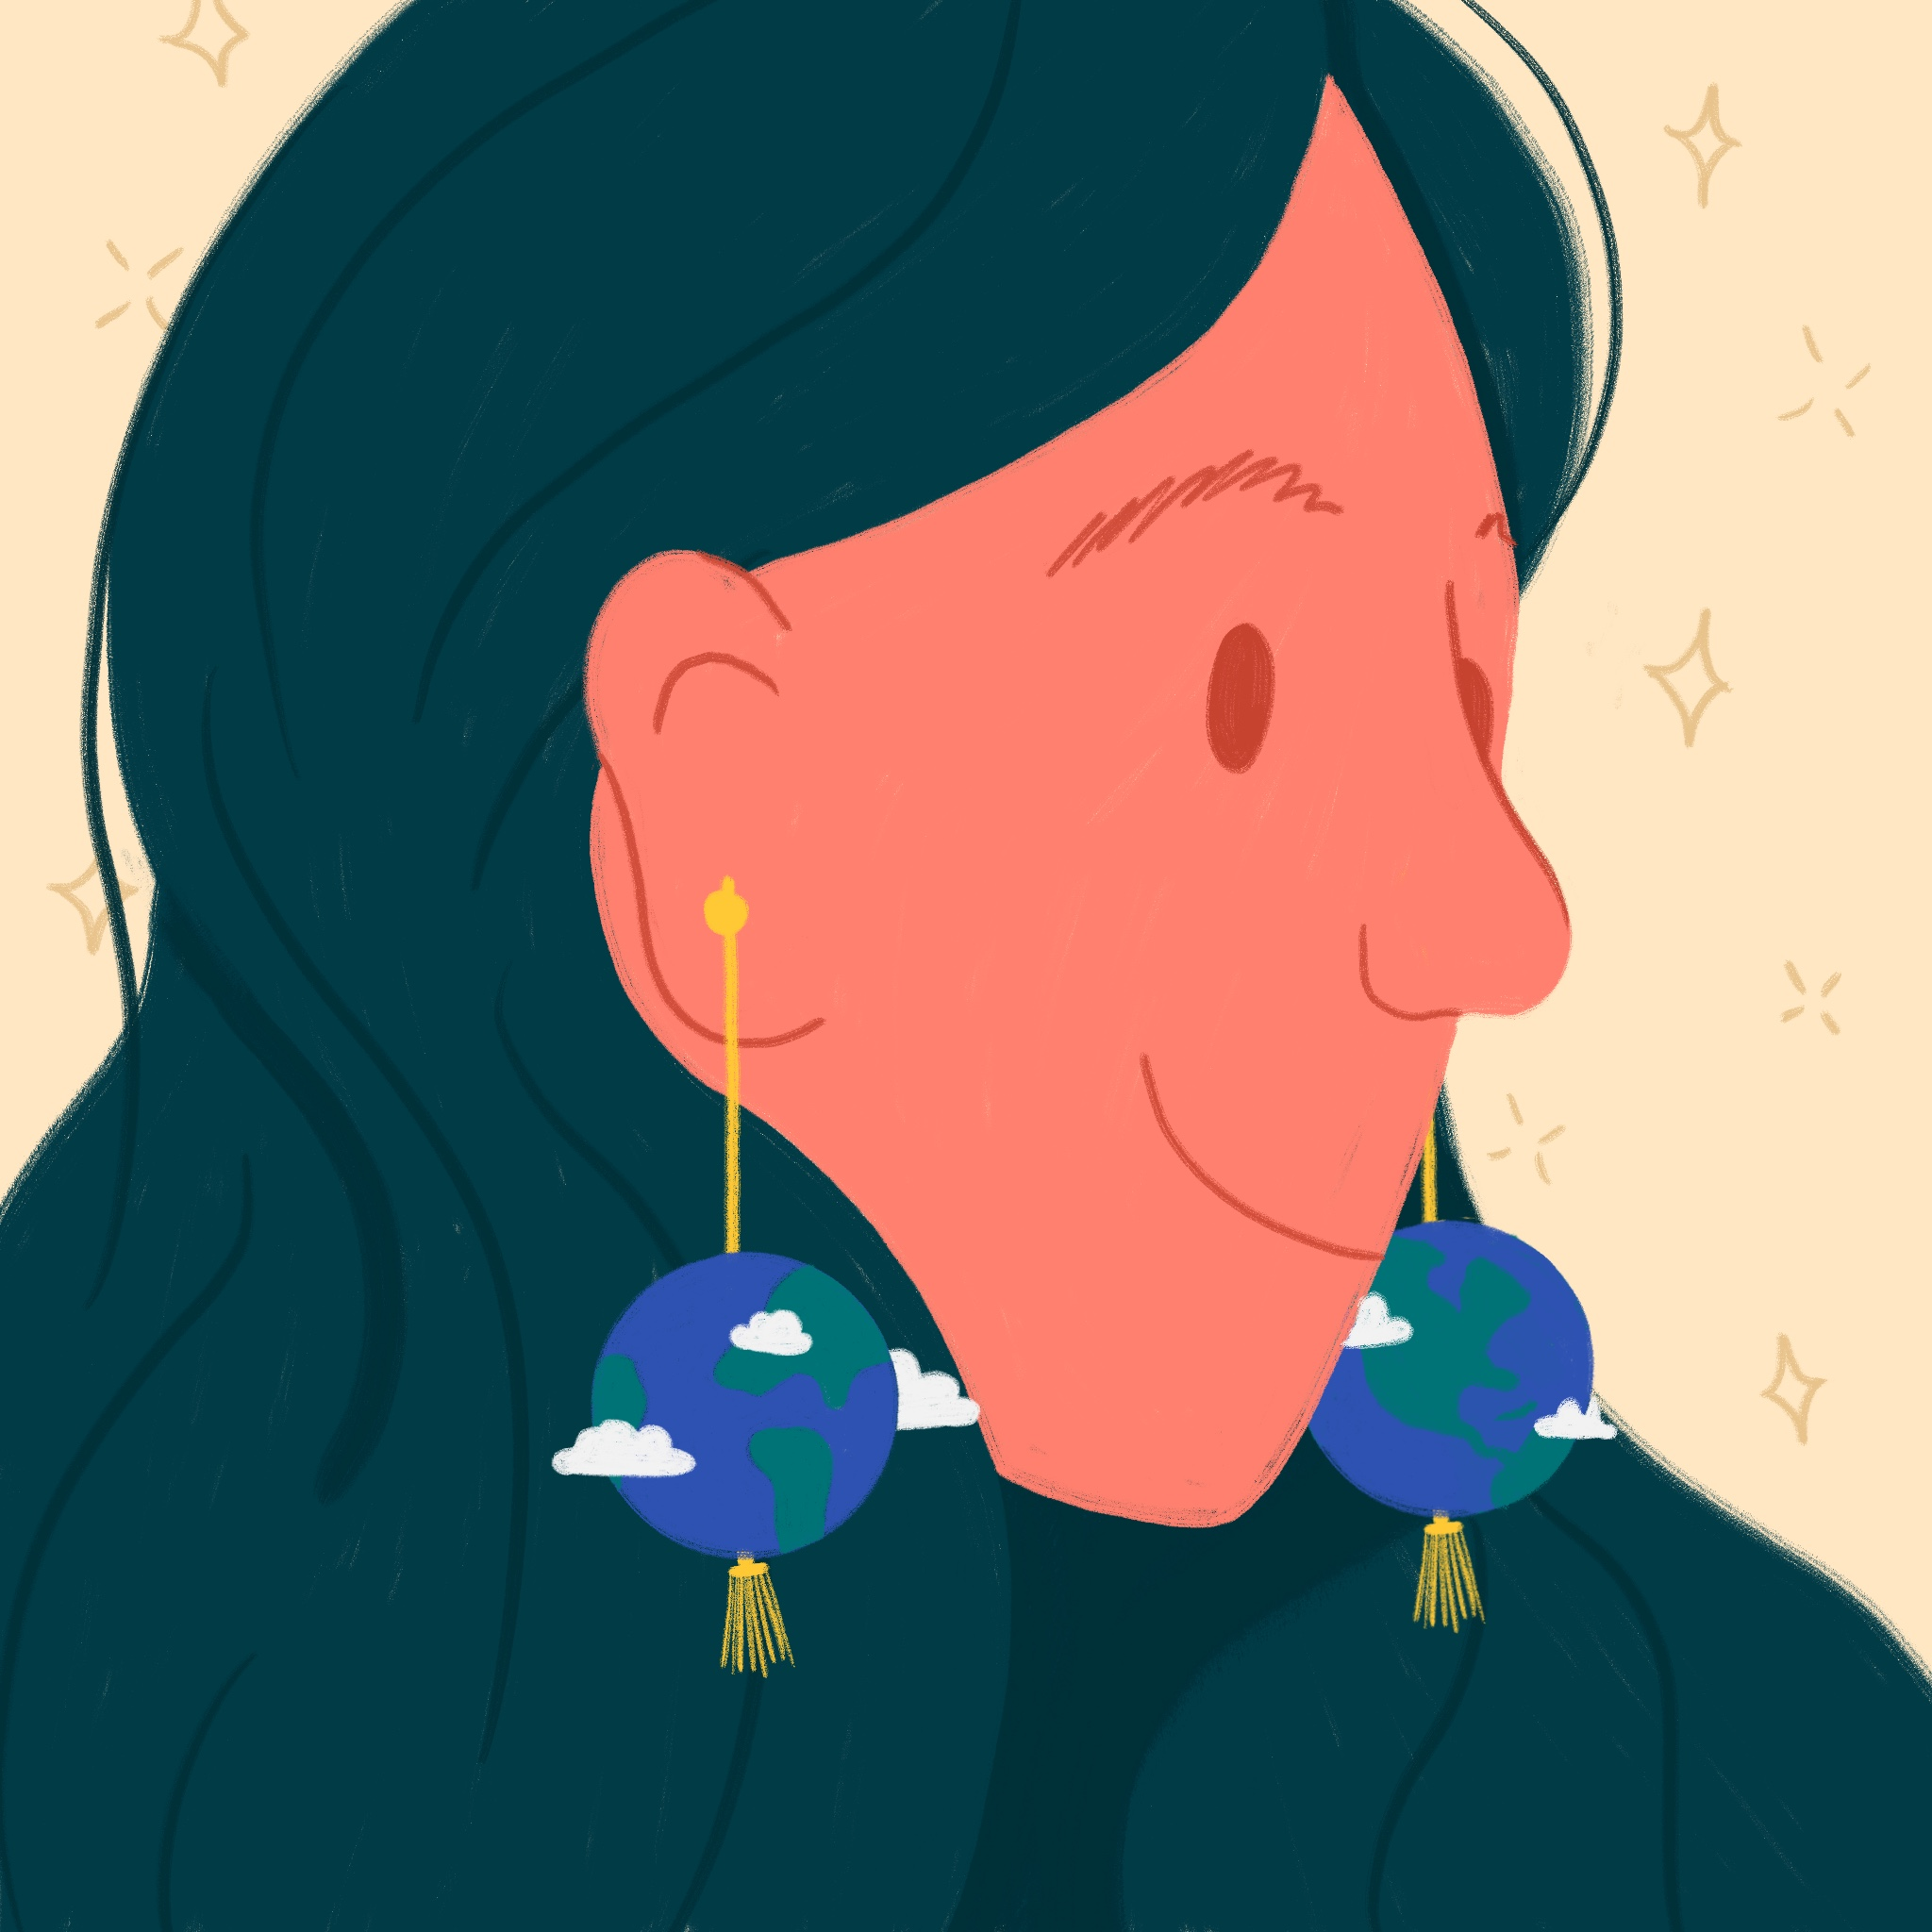 A close up illustration of a woman with earth-shaped earrings